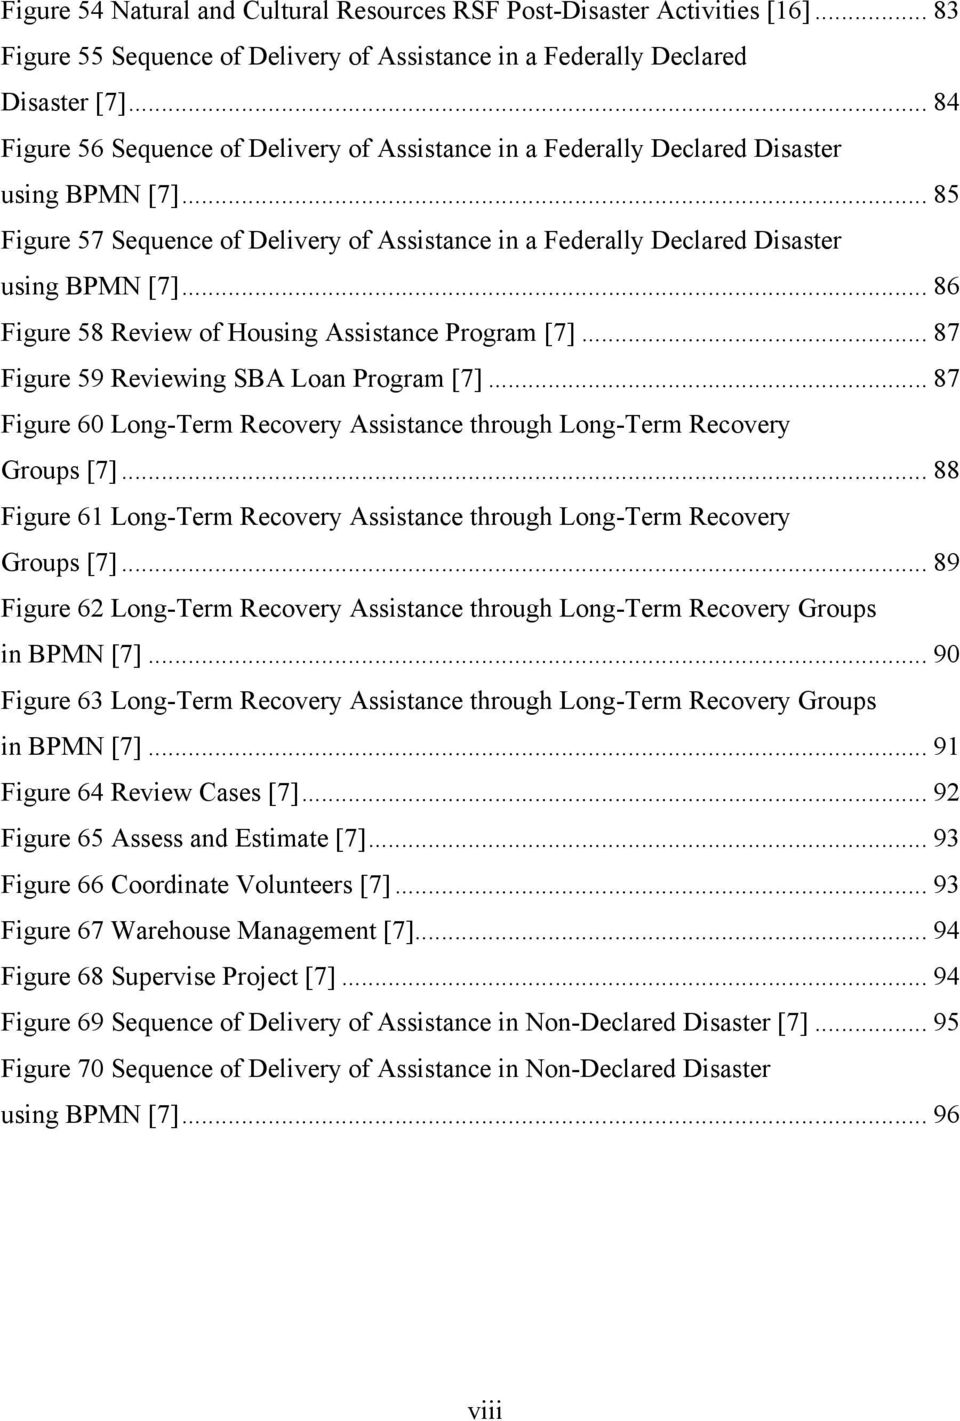 .. 86 Figure 58 Review of Housing Assistance Program [7]... 87 Figure 59 Reviewing SBA Loan Program [7]... 87 Figure 60 Long-Term Recovery Assistance through Long-Term Recovery Groups [7].